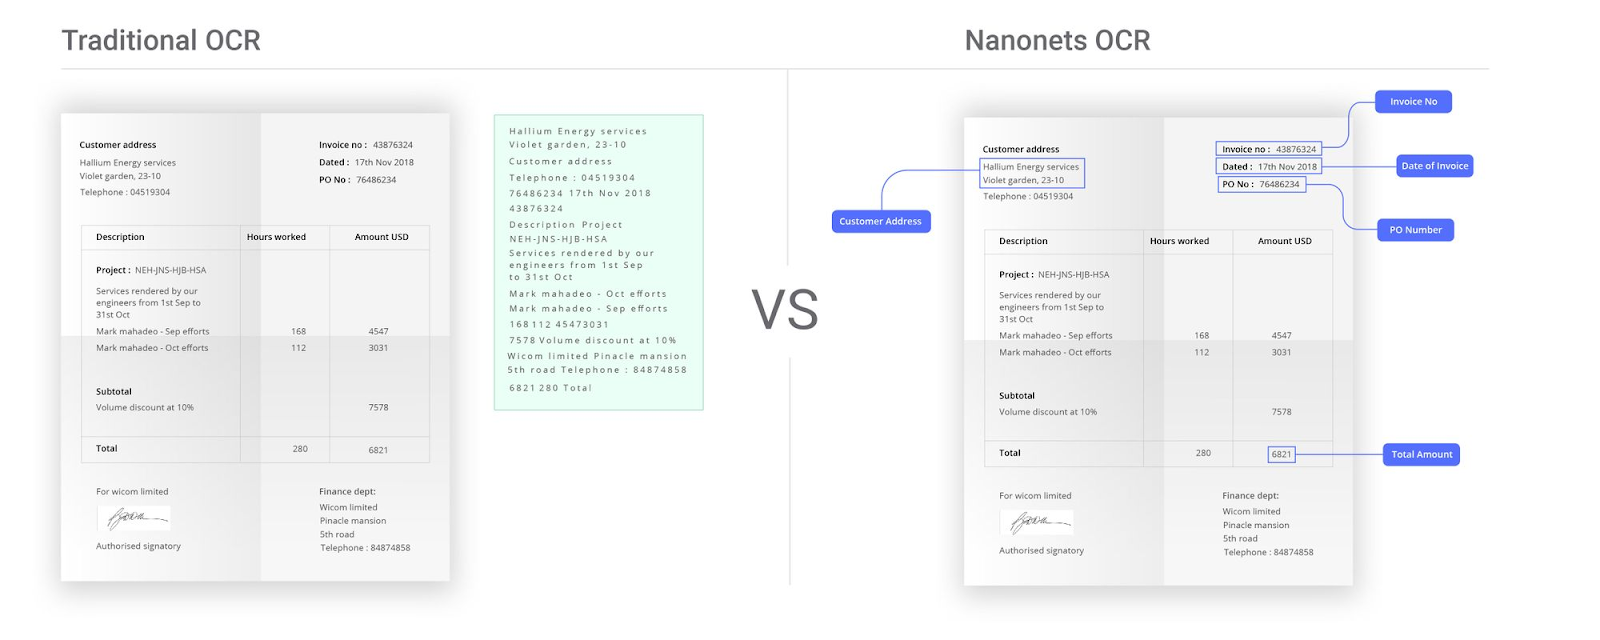 Nanonets OCR for Three-Way Matching